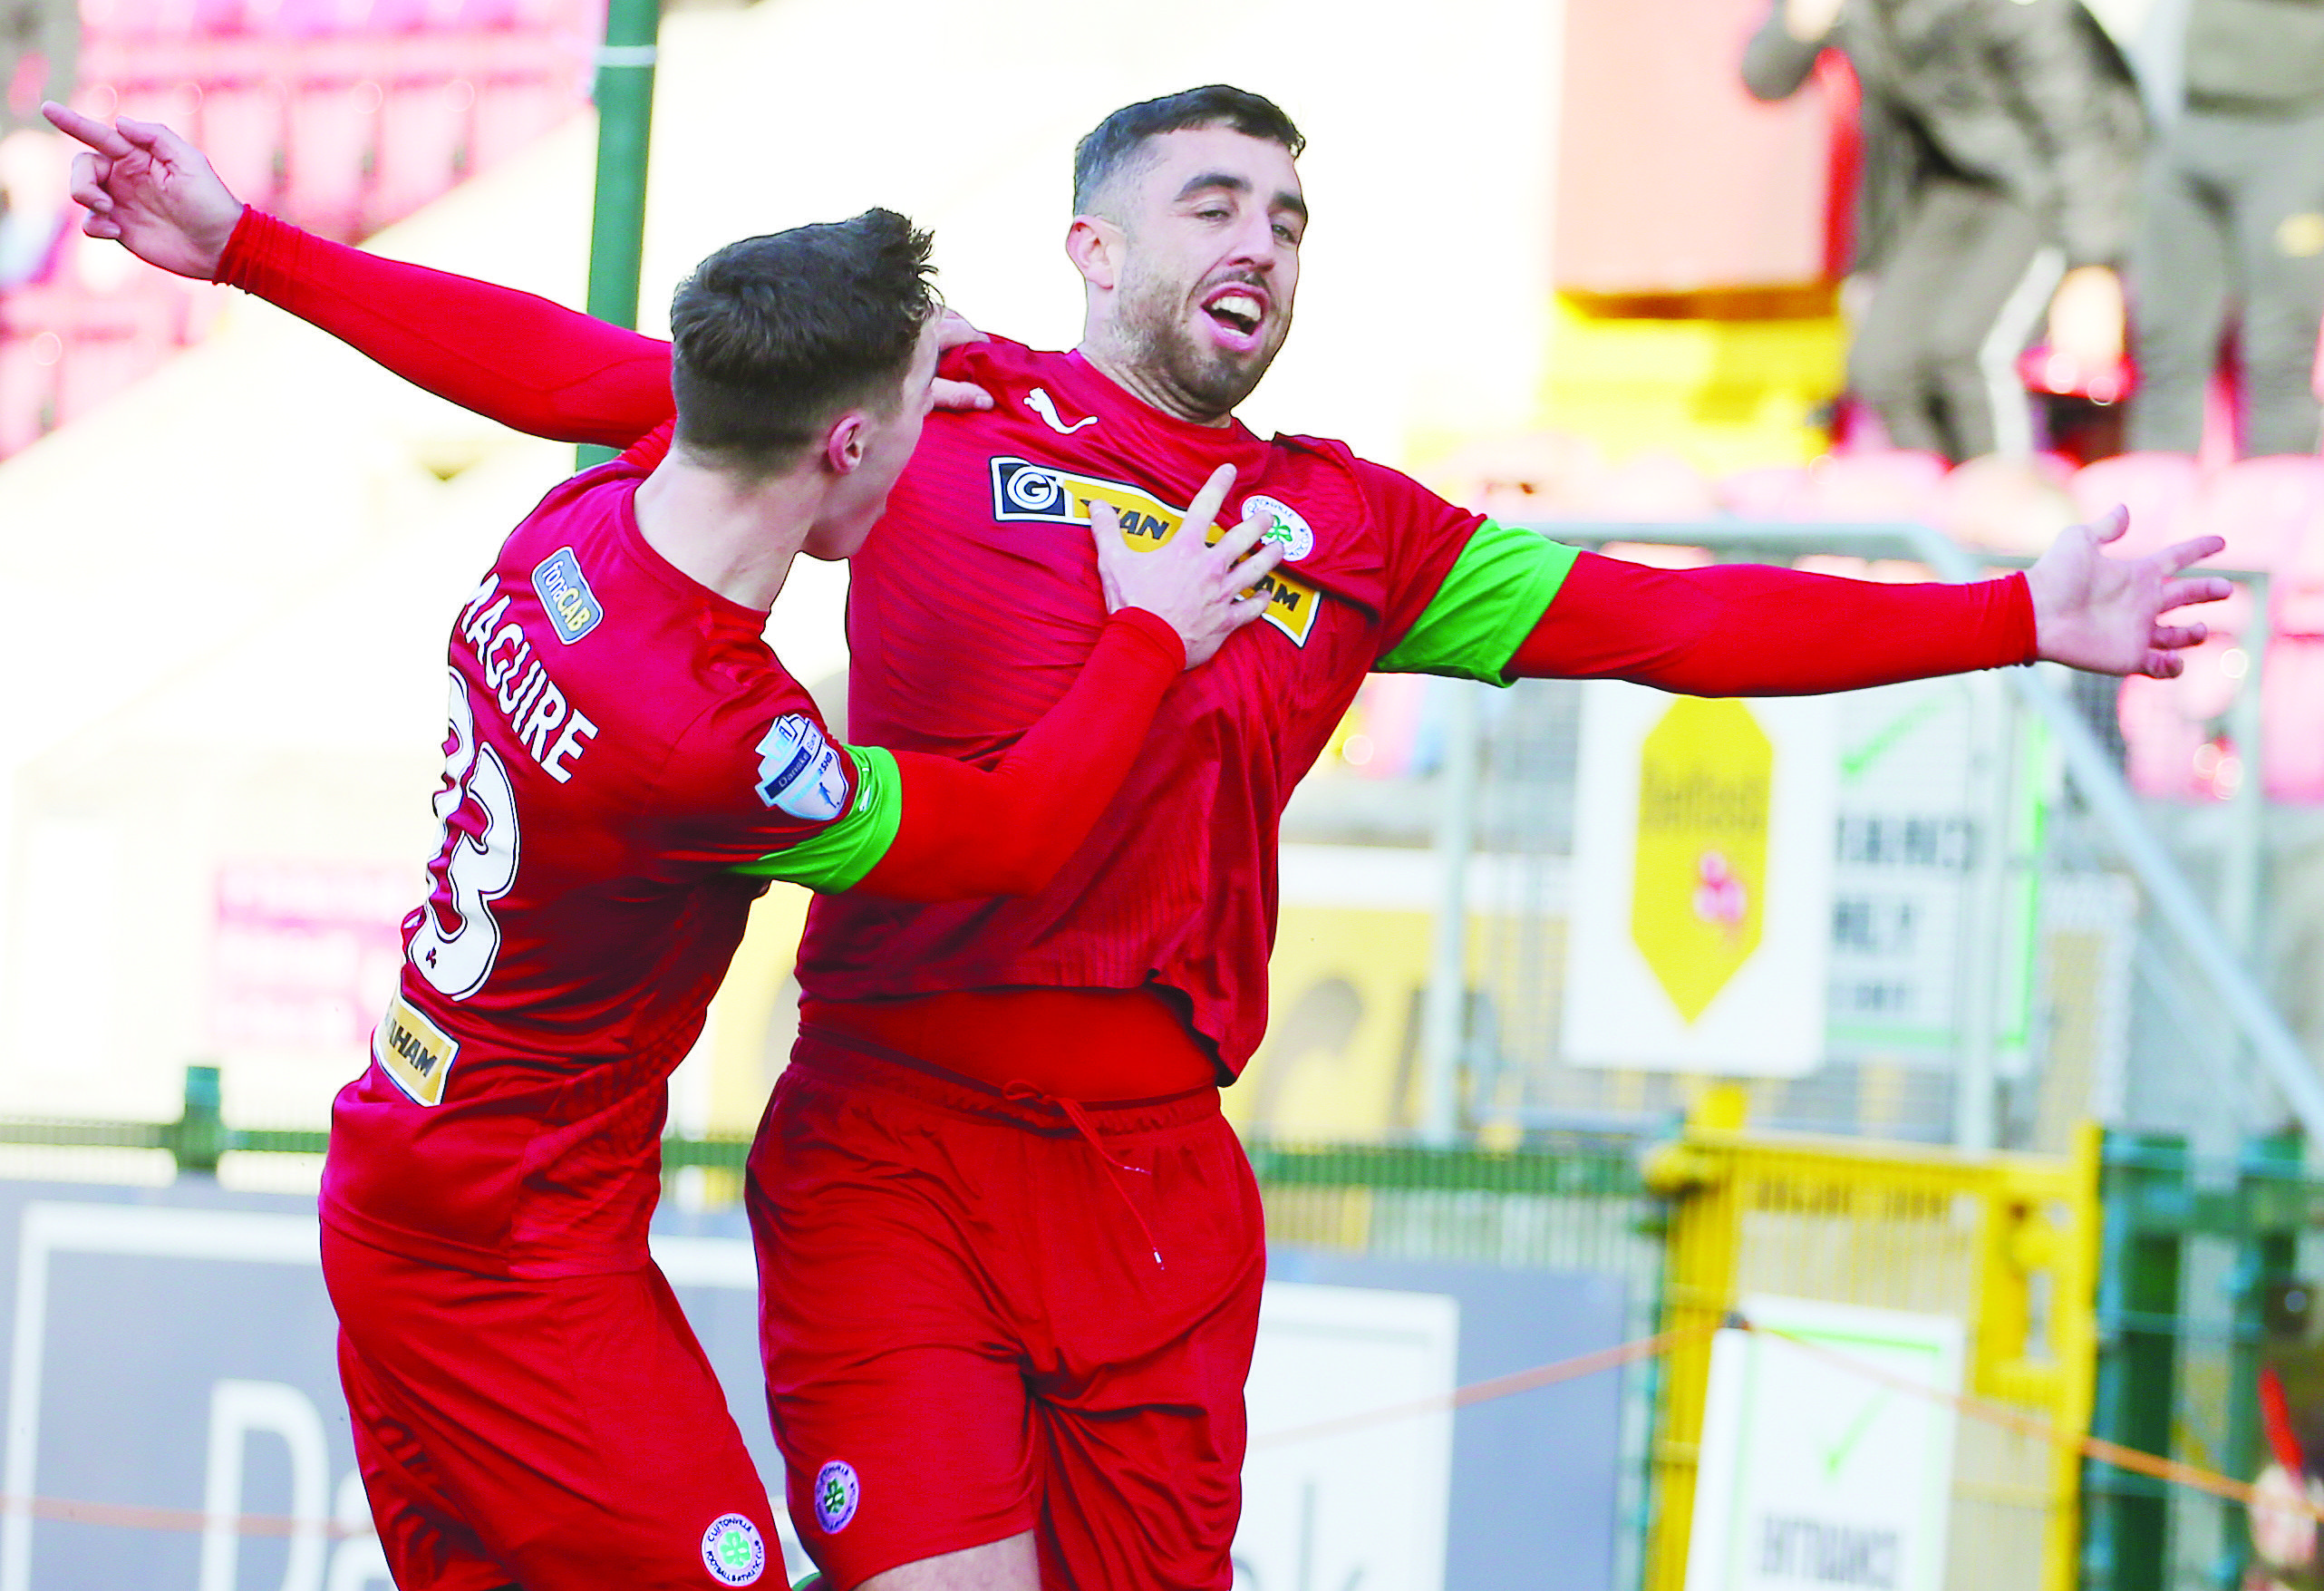 Joe Gormley scored four times in Cliftonville's win over Dundela at Solitude on Tuesday night